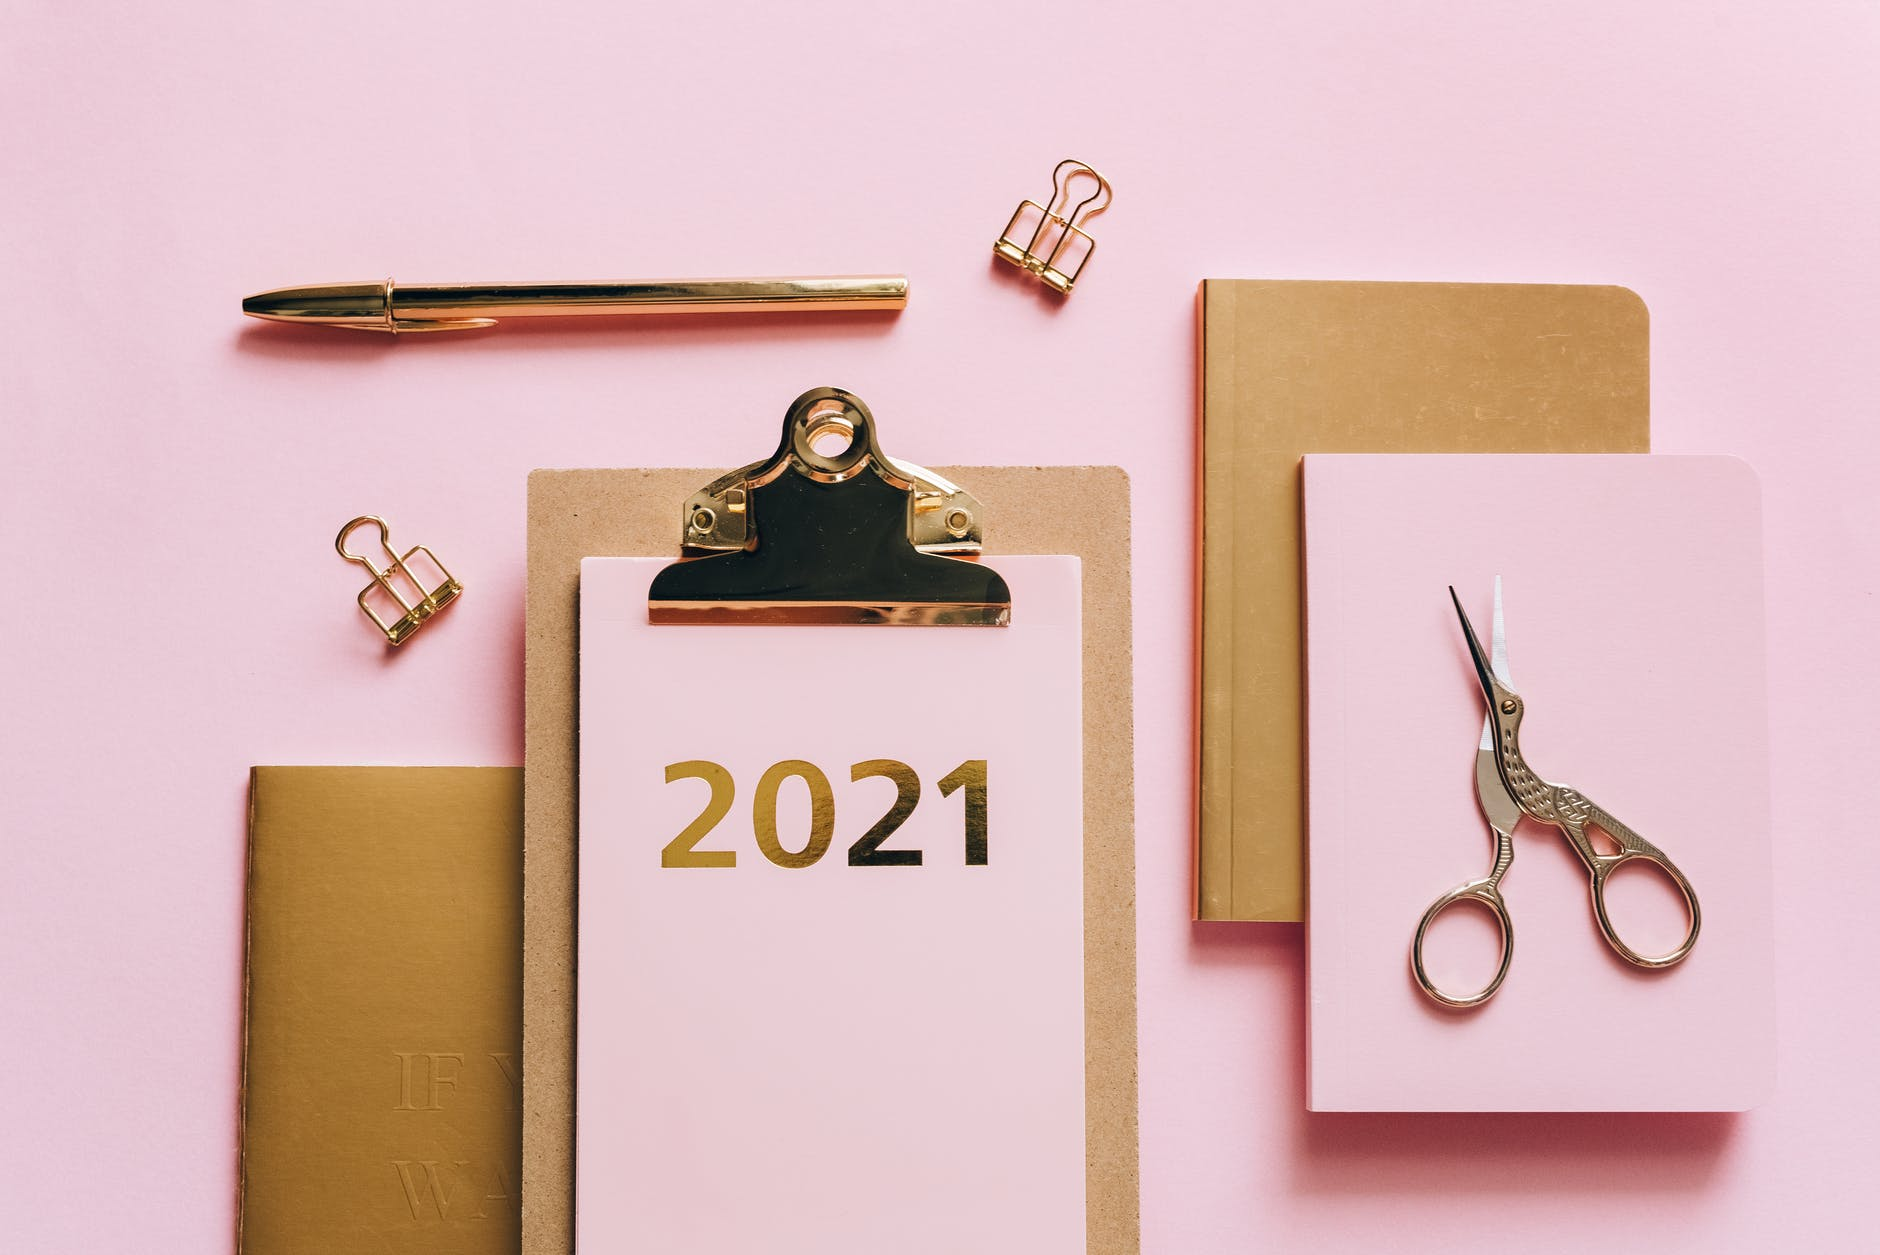 Photo of pale pink office supplies and planner for the year 2021.